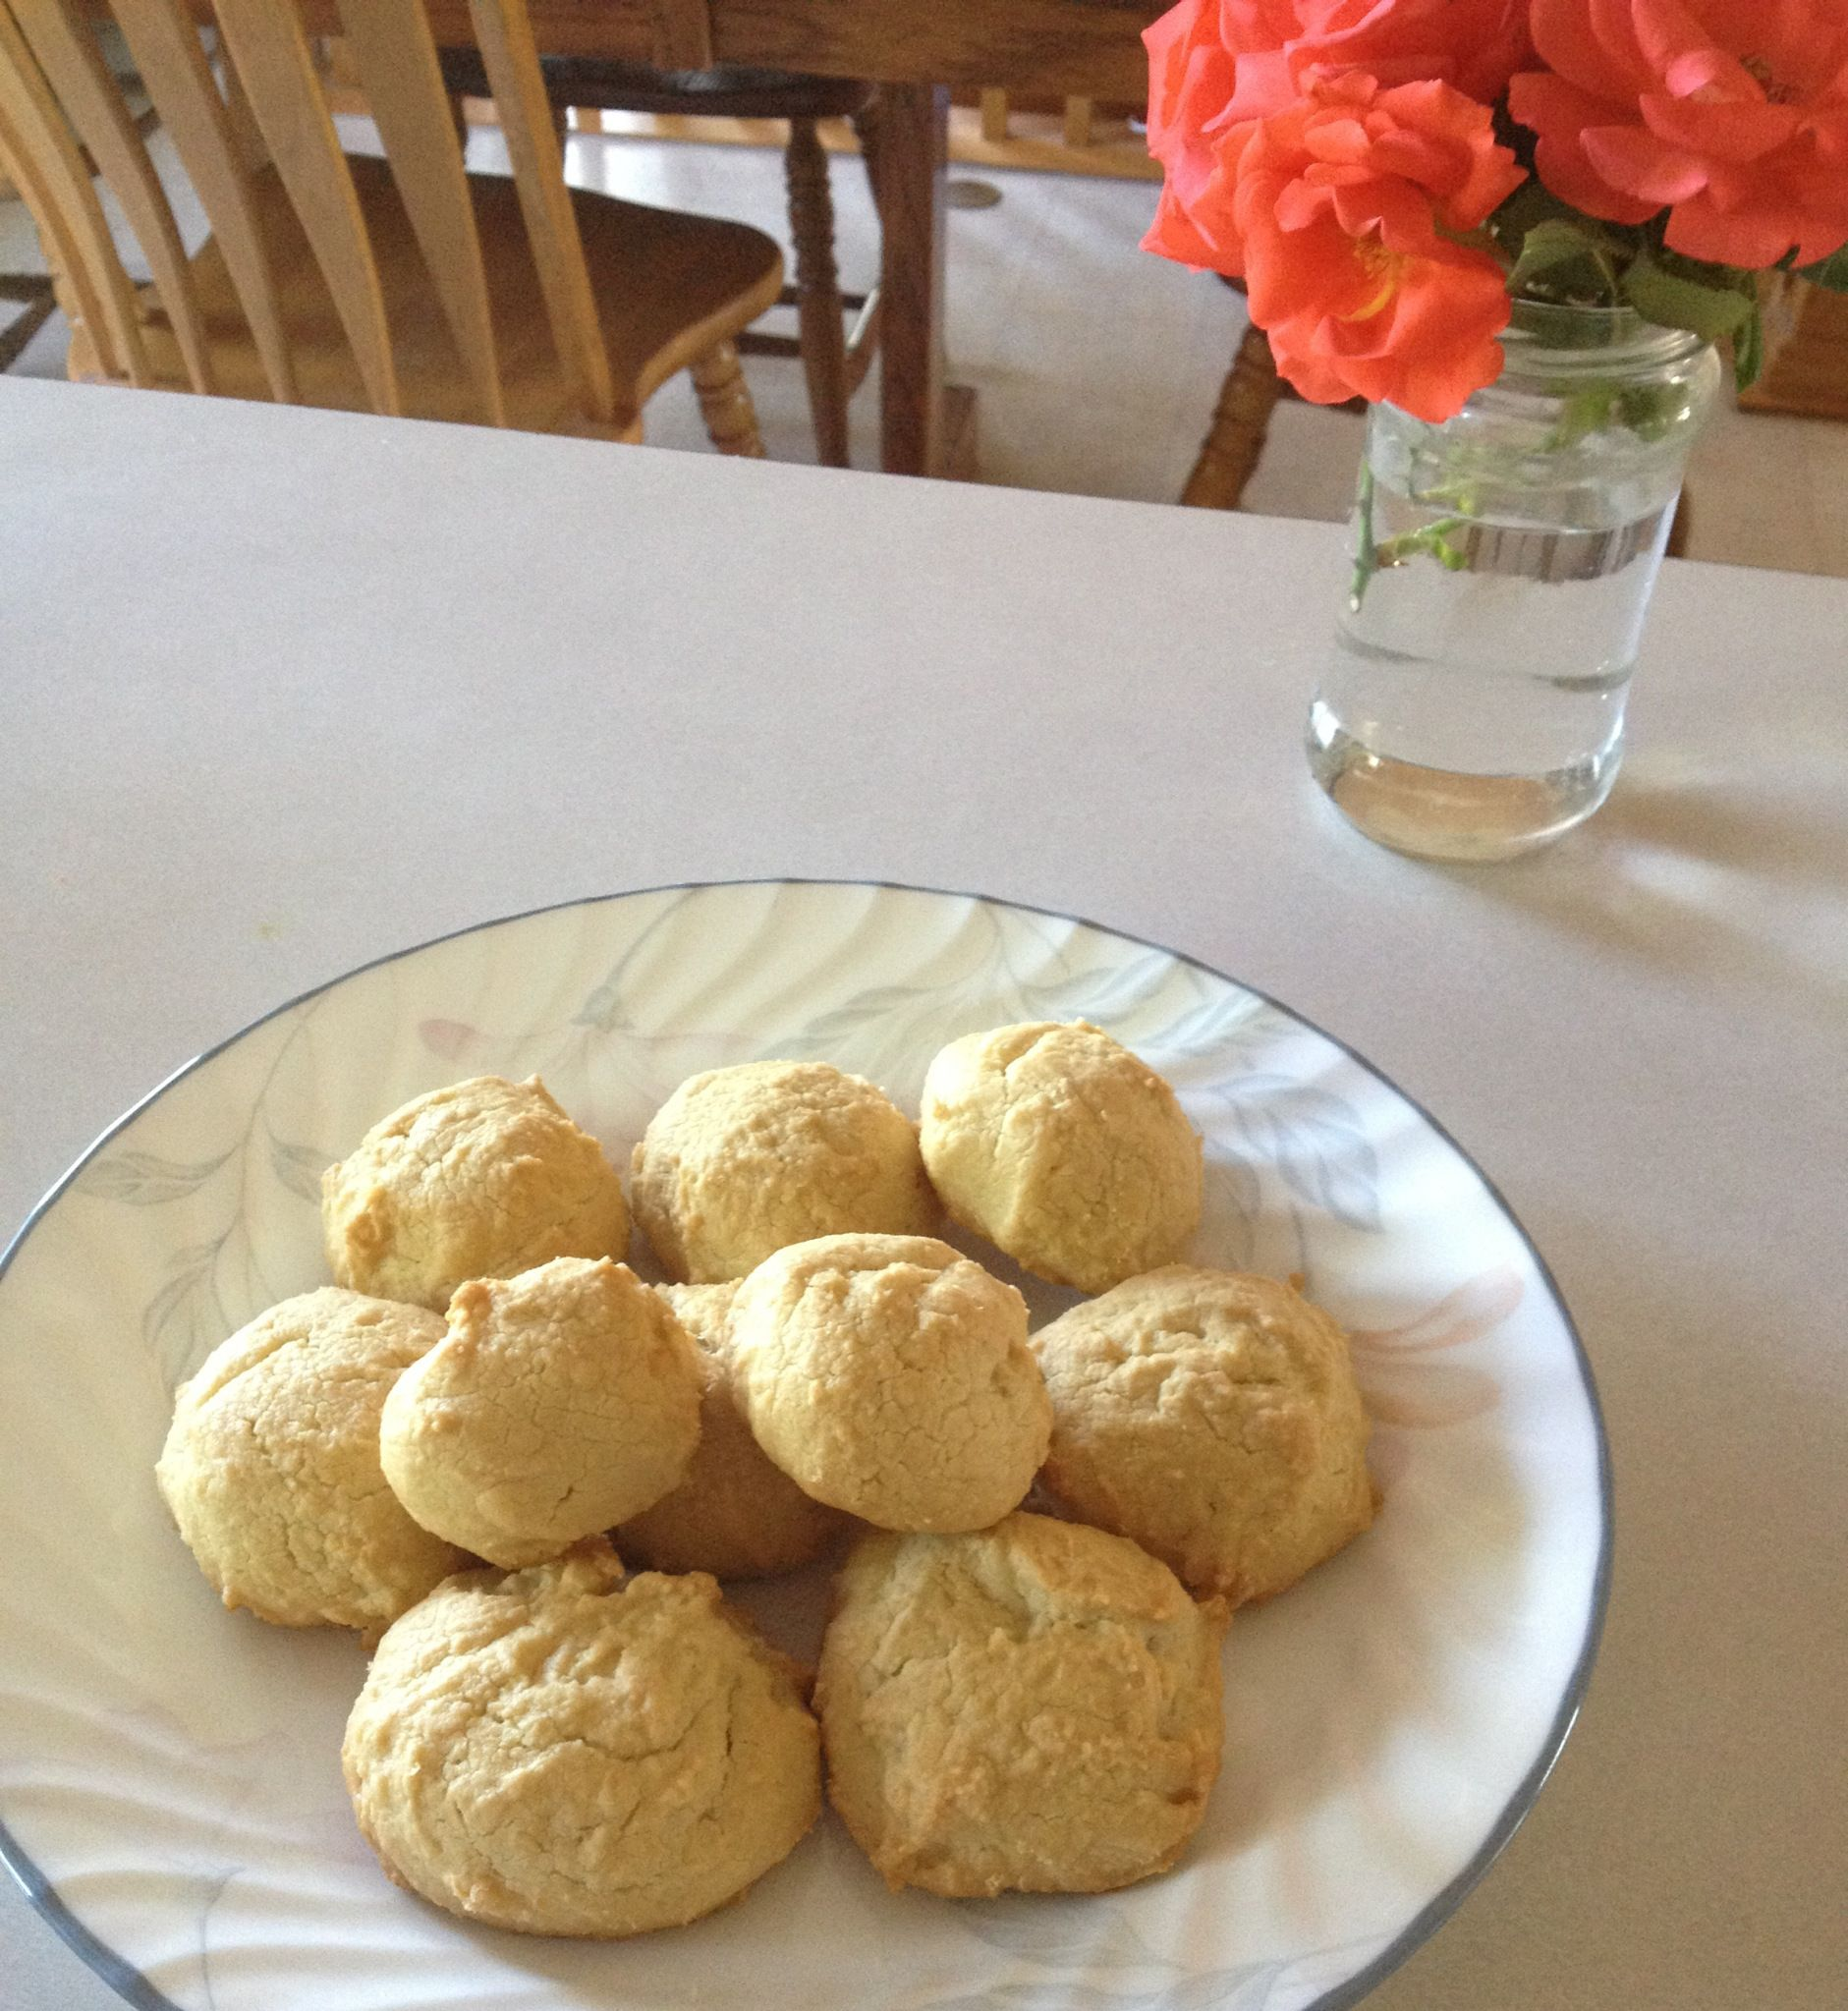 Pin By Jessica Hendrix On Have Your Cake Eat It Too Dinner Rolls Paleo Dinner How To Eat Paleo